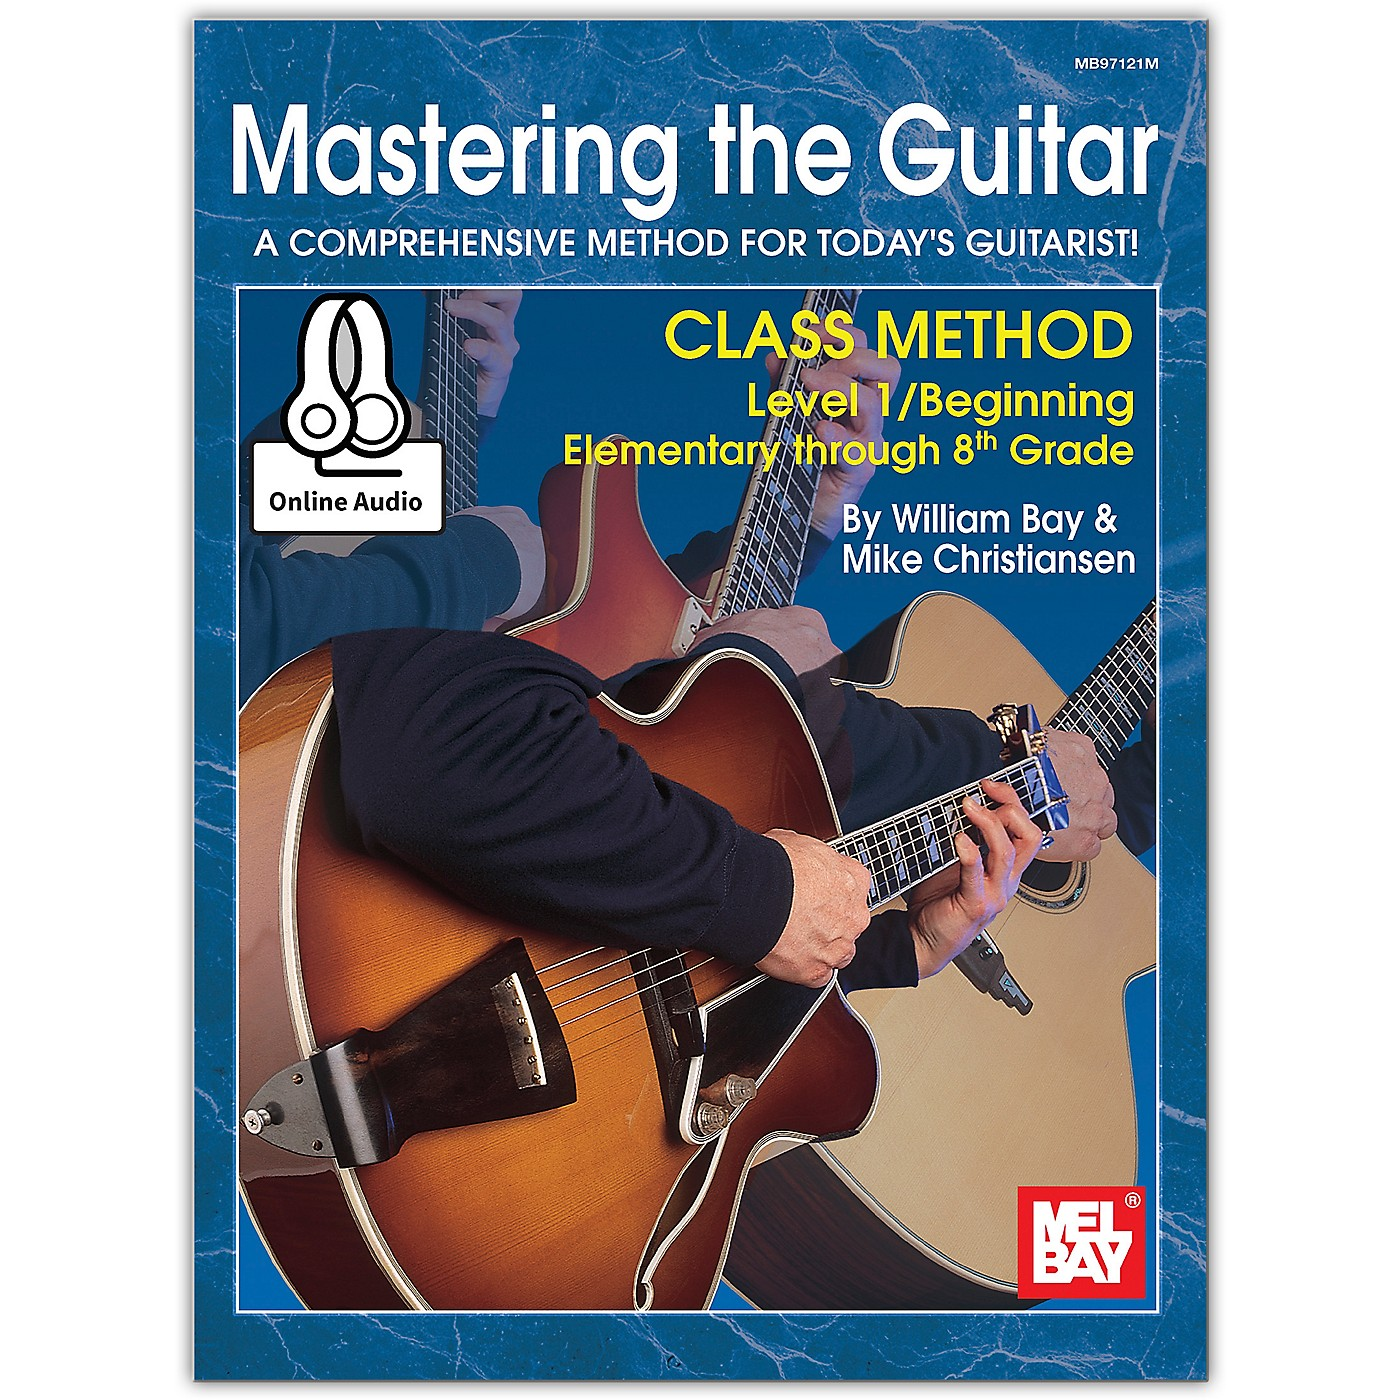 Mel Bay Mastering the Guitar Class Method 1, Elementary to 8th Grade, Book plus Online Audio thumbnail